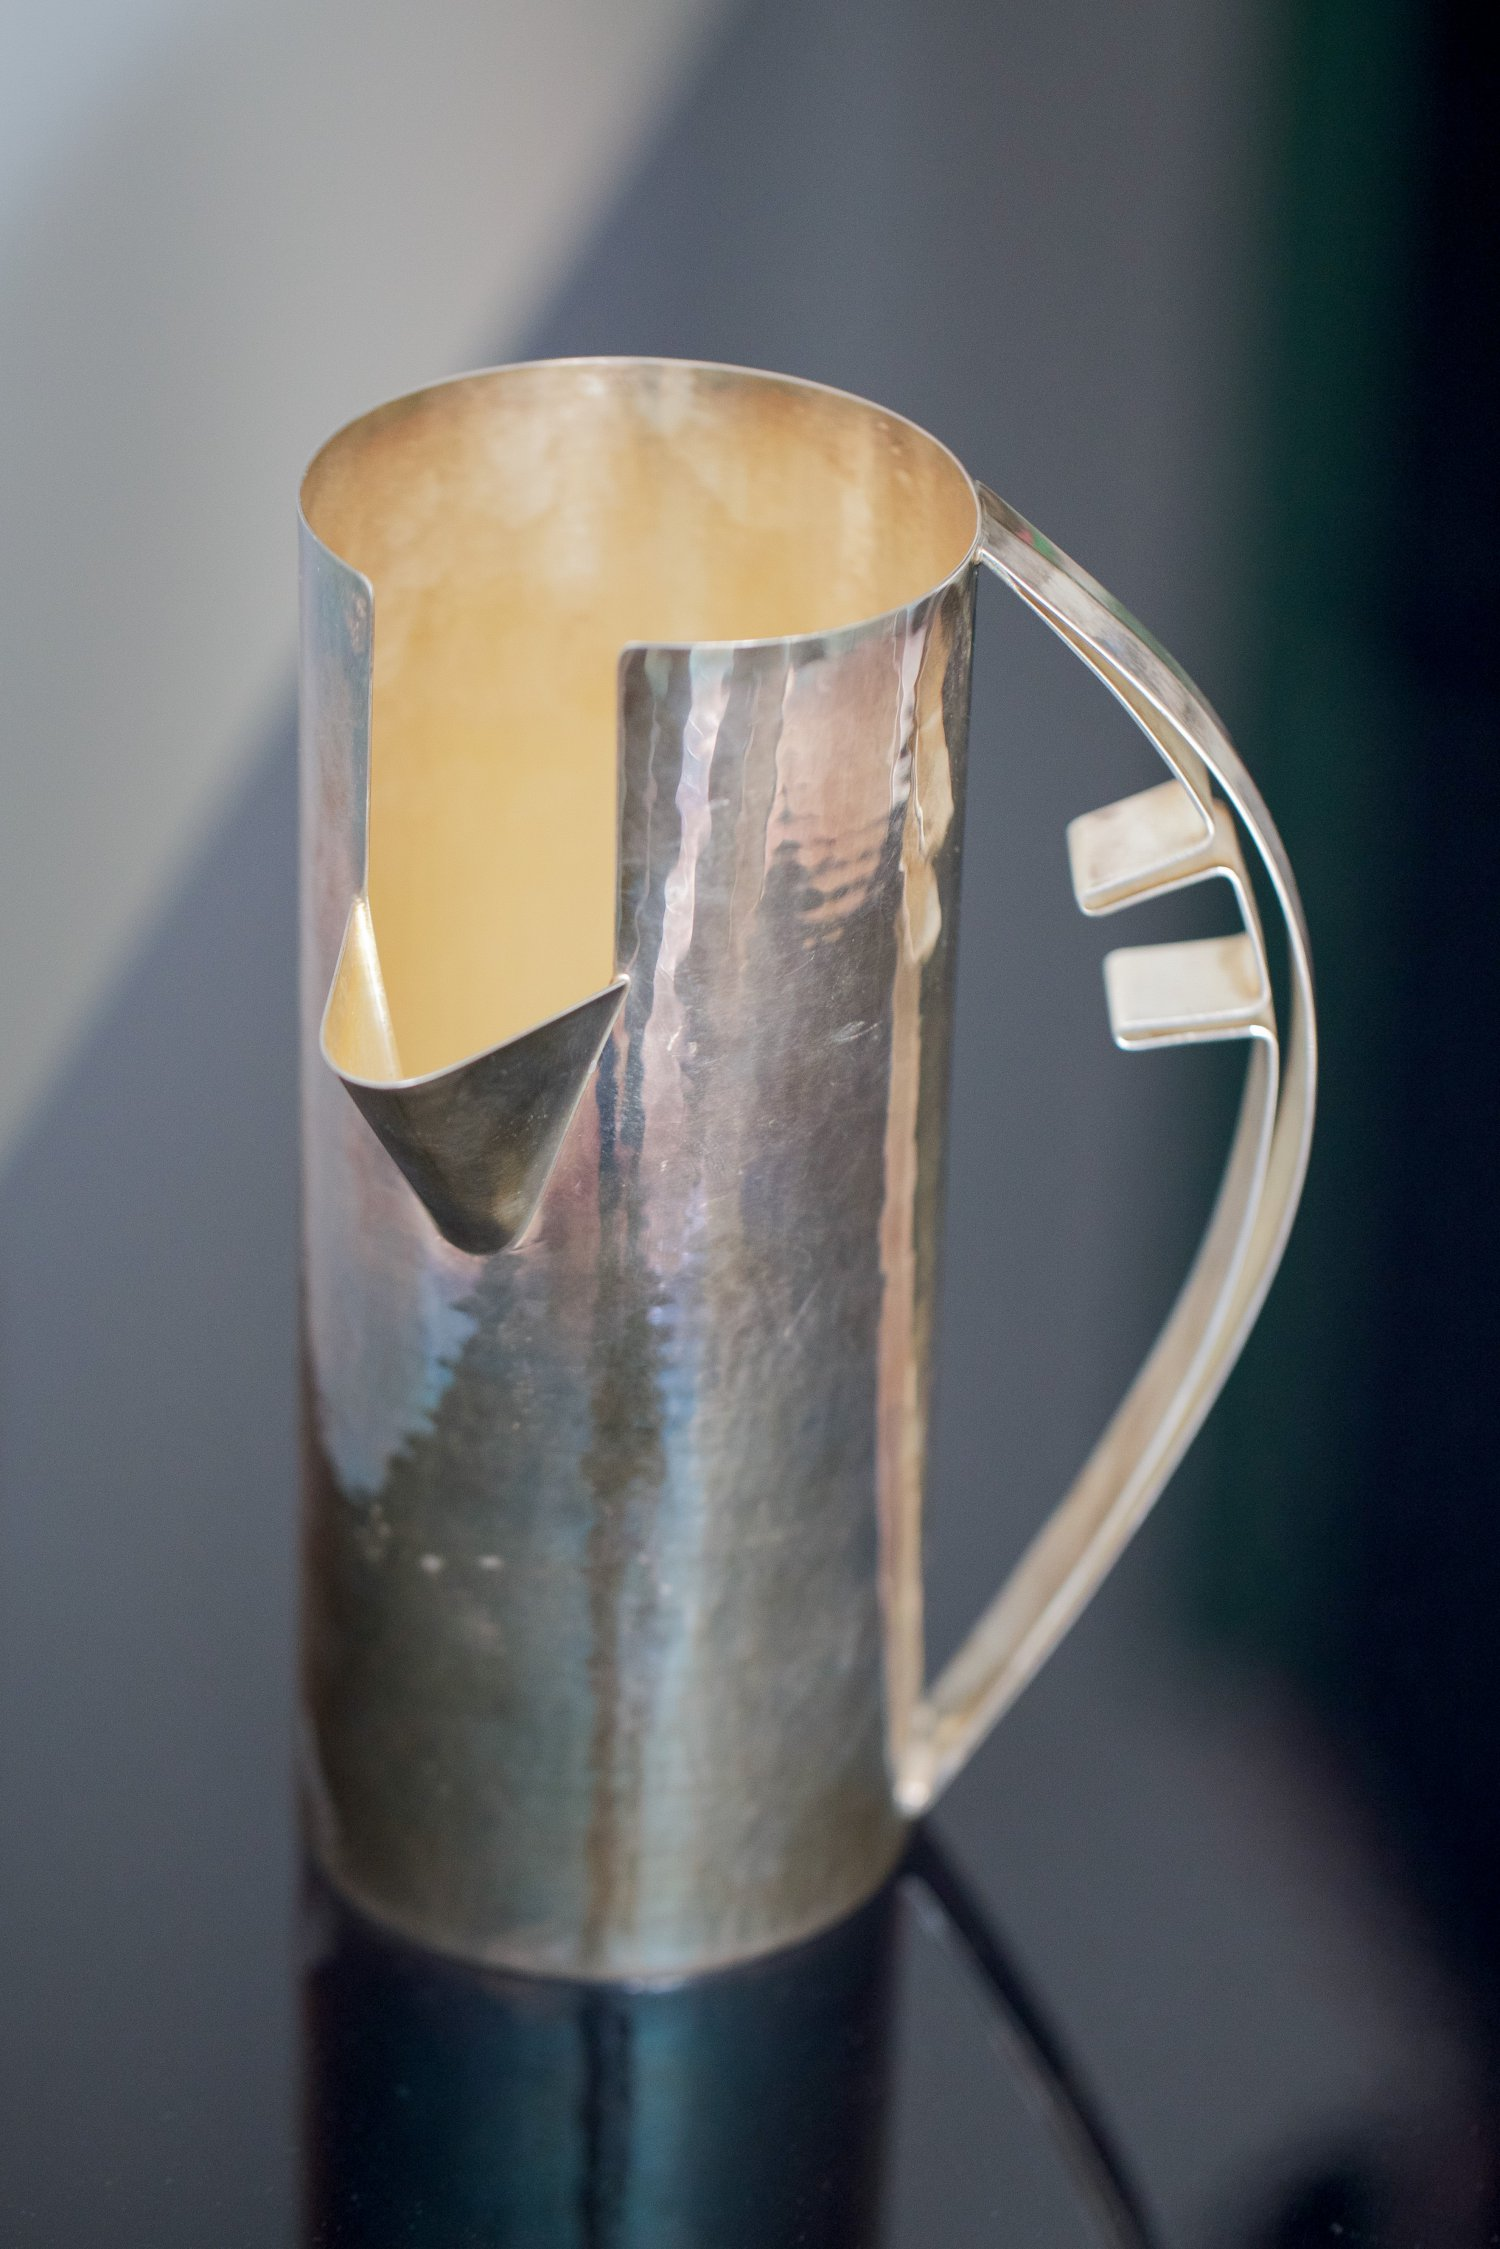 Carlo Scarpa silver pitcher for Cleto Munari